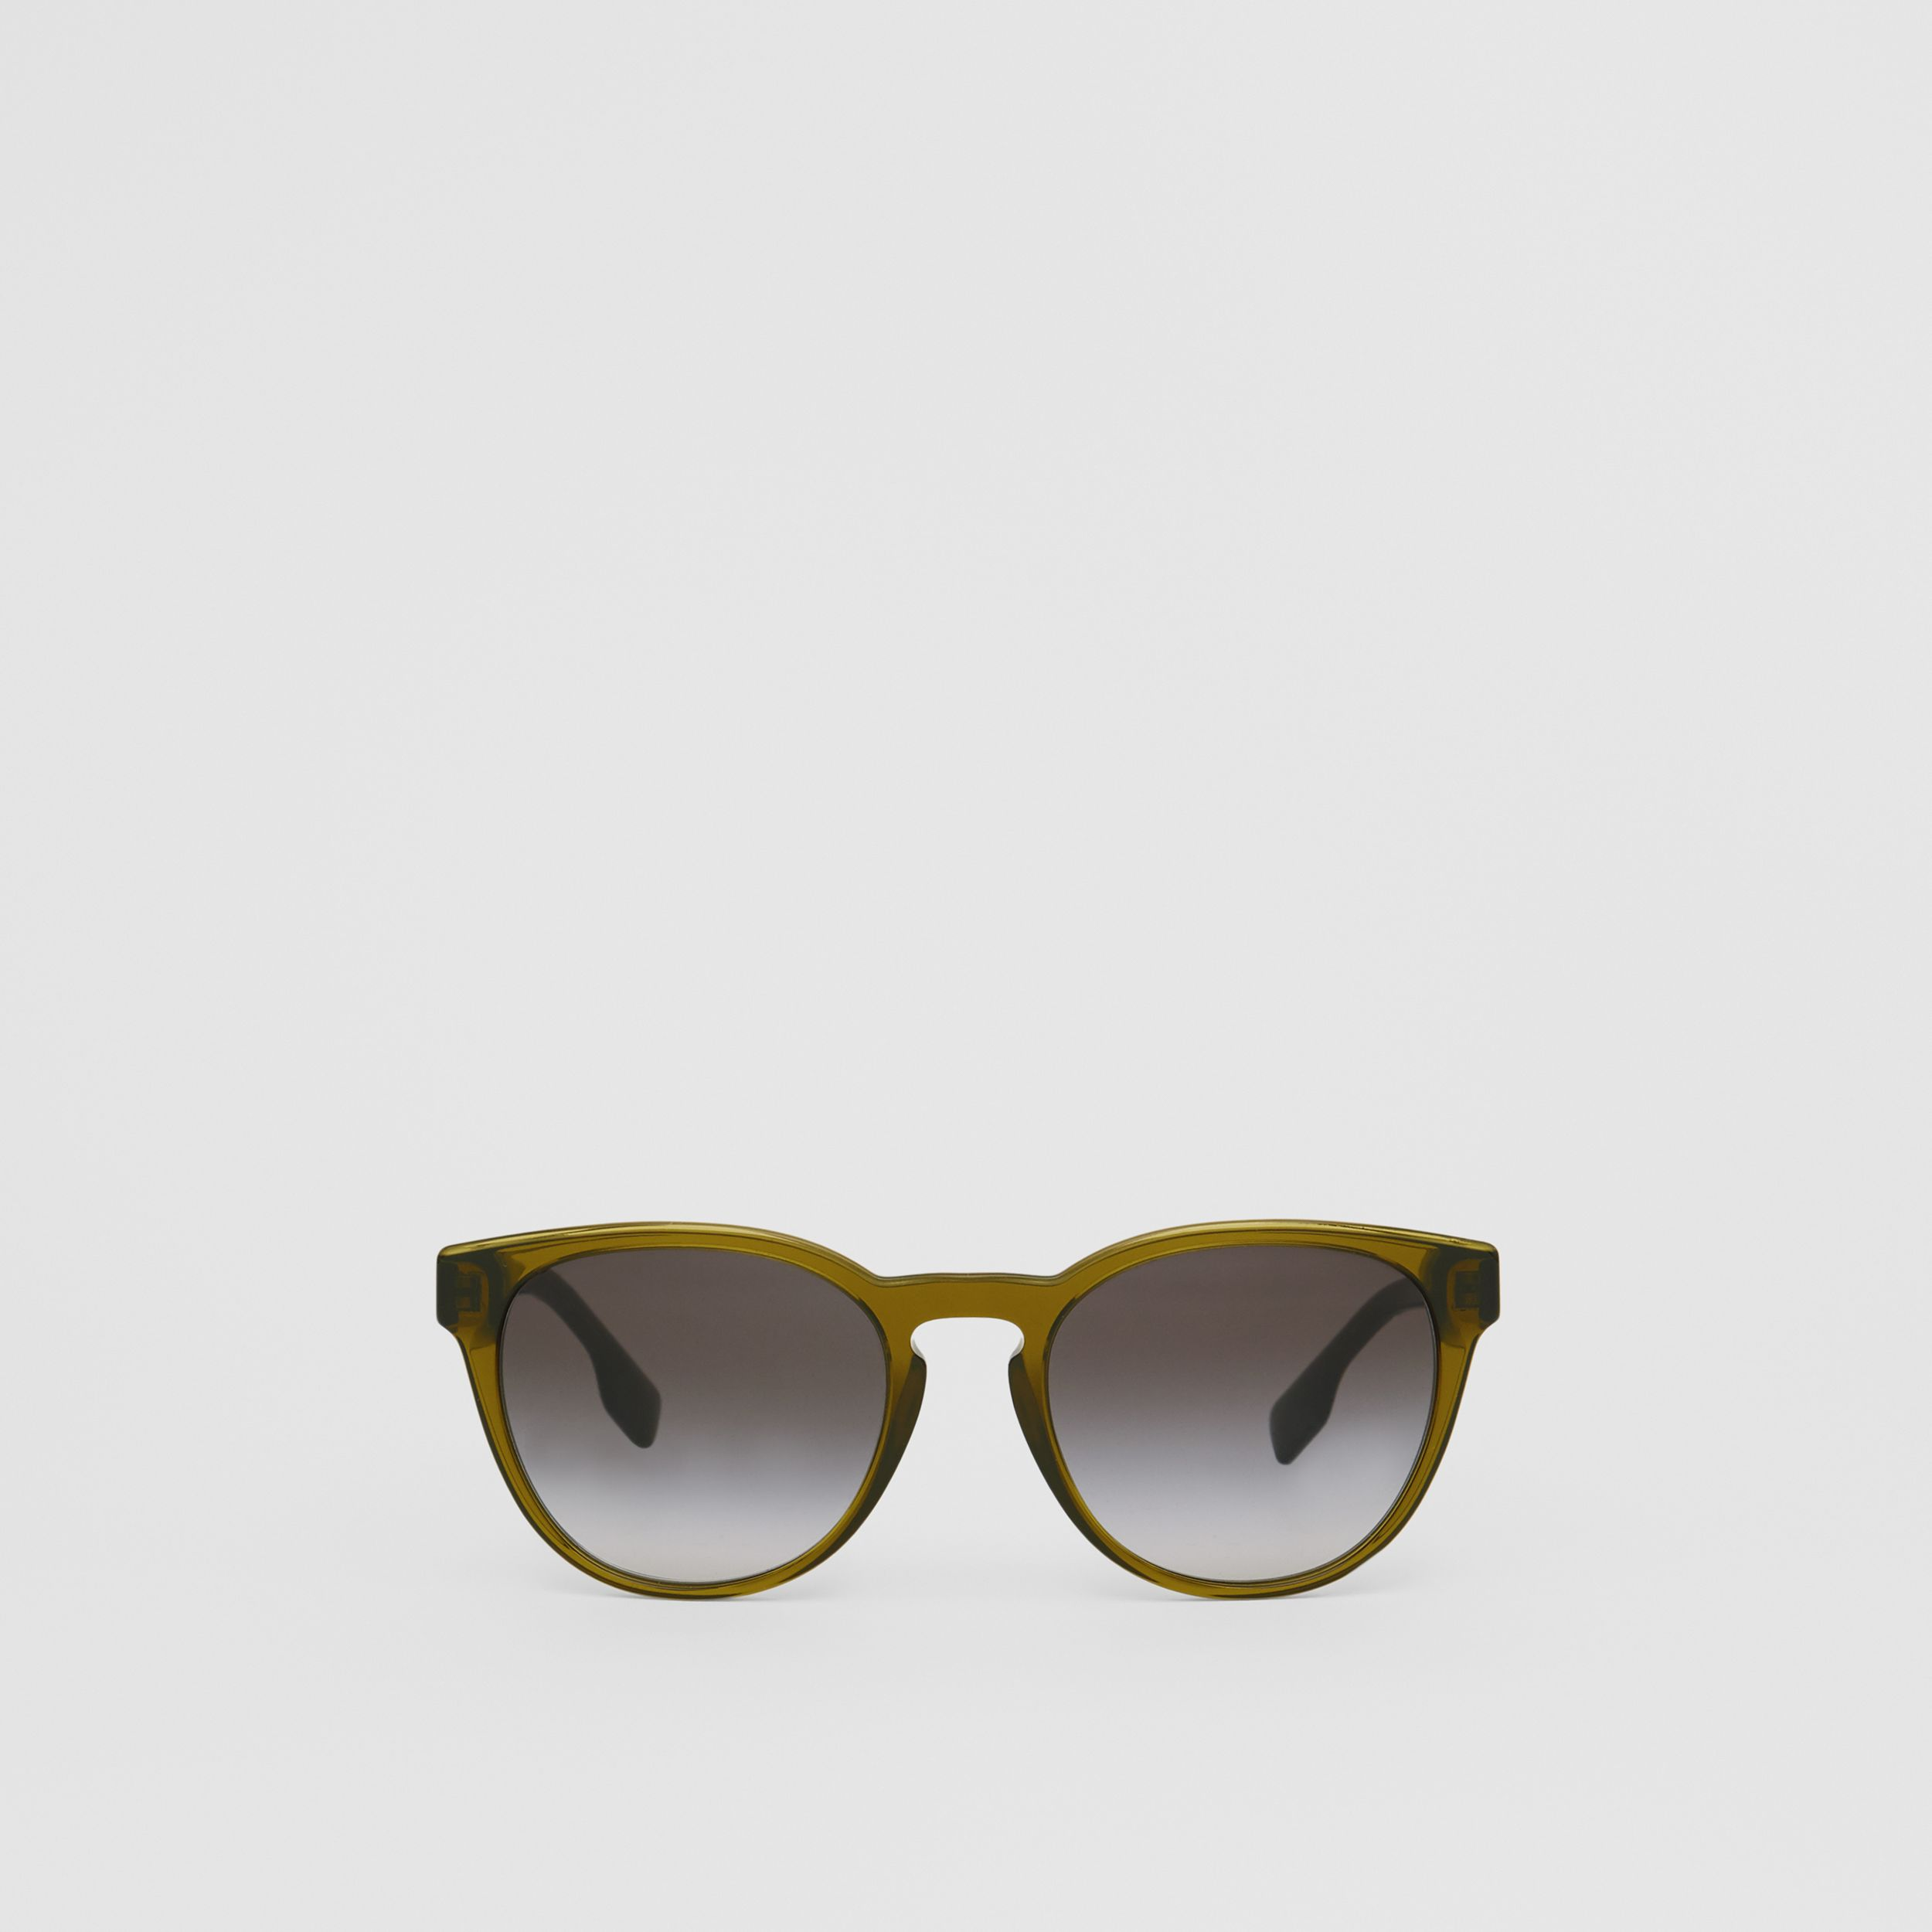 Round Frame Sunglasses in Olive - Men | Burberry - 1